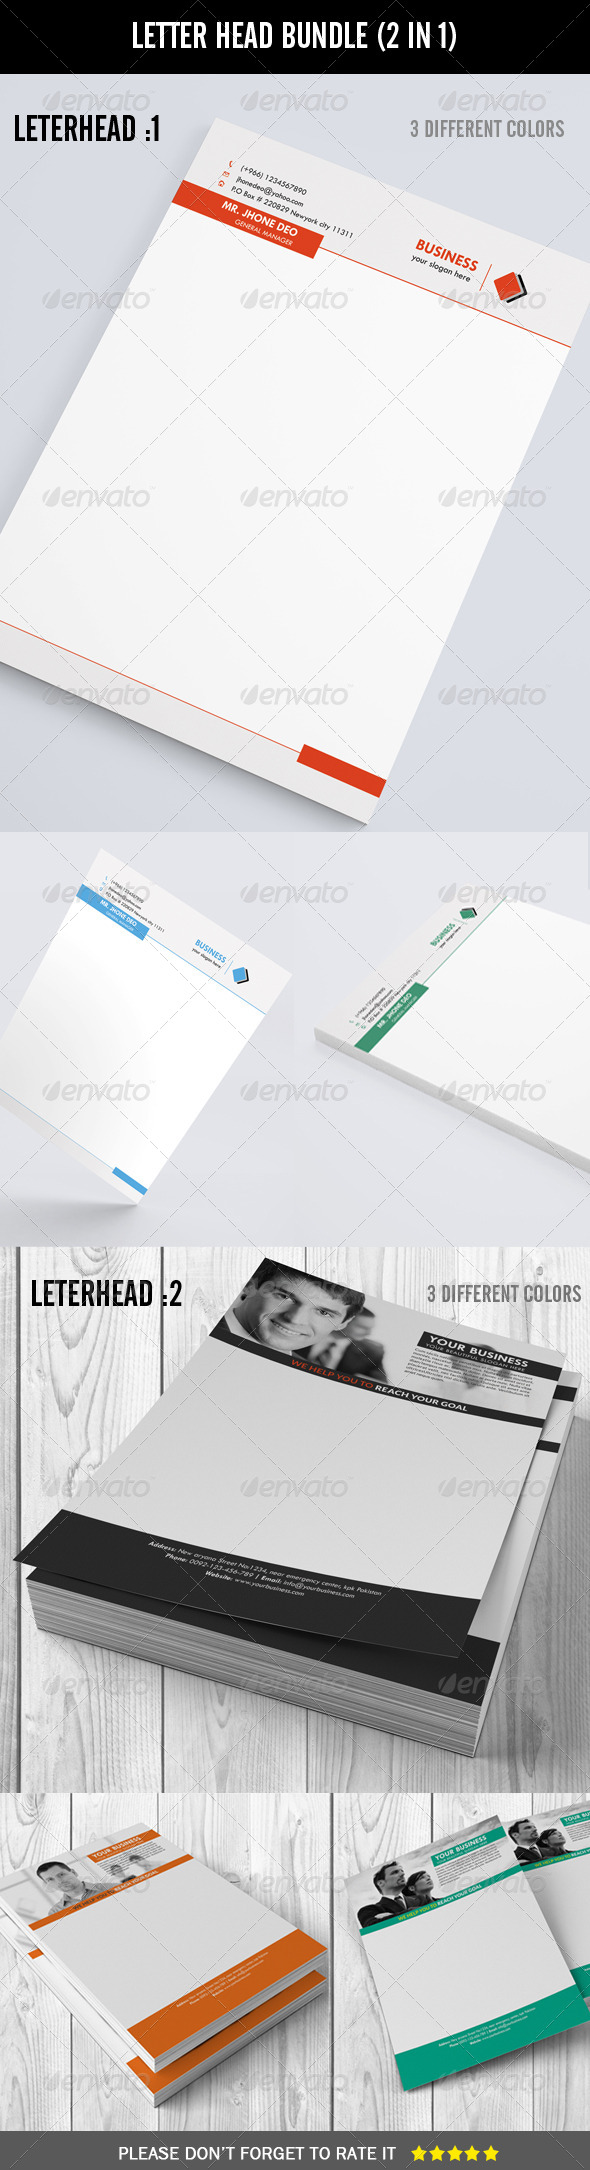 GraphicRiver Letter Head Bundle 2 in 1 7606219